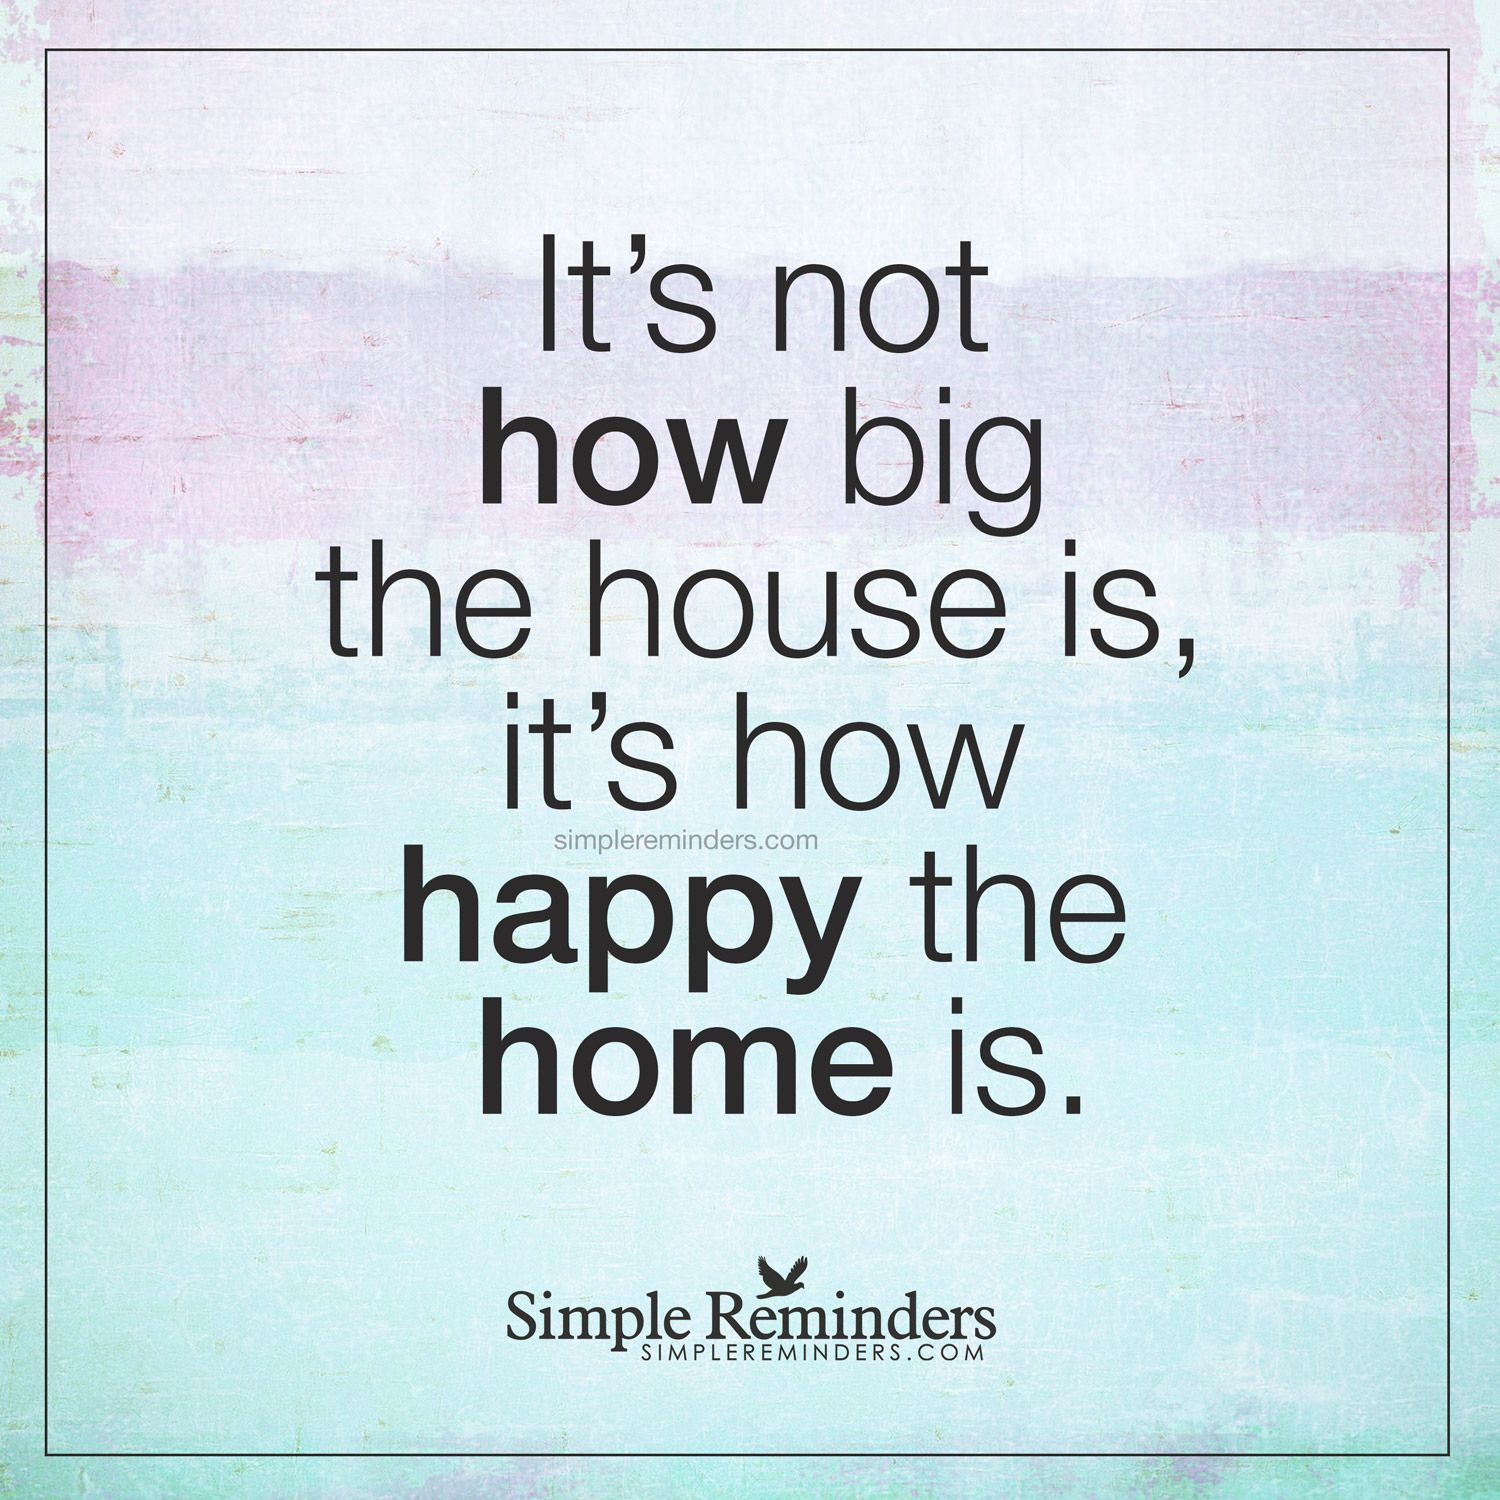 a happy home is all that matters it s not how big the house is